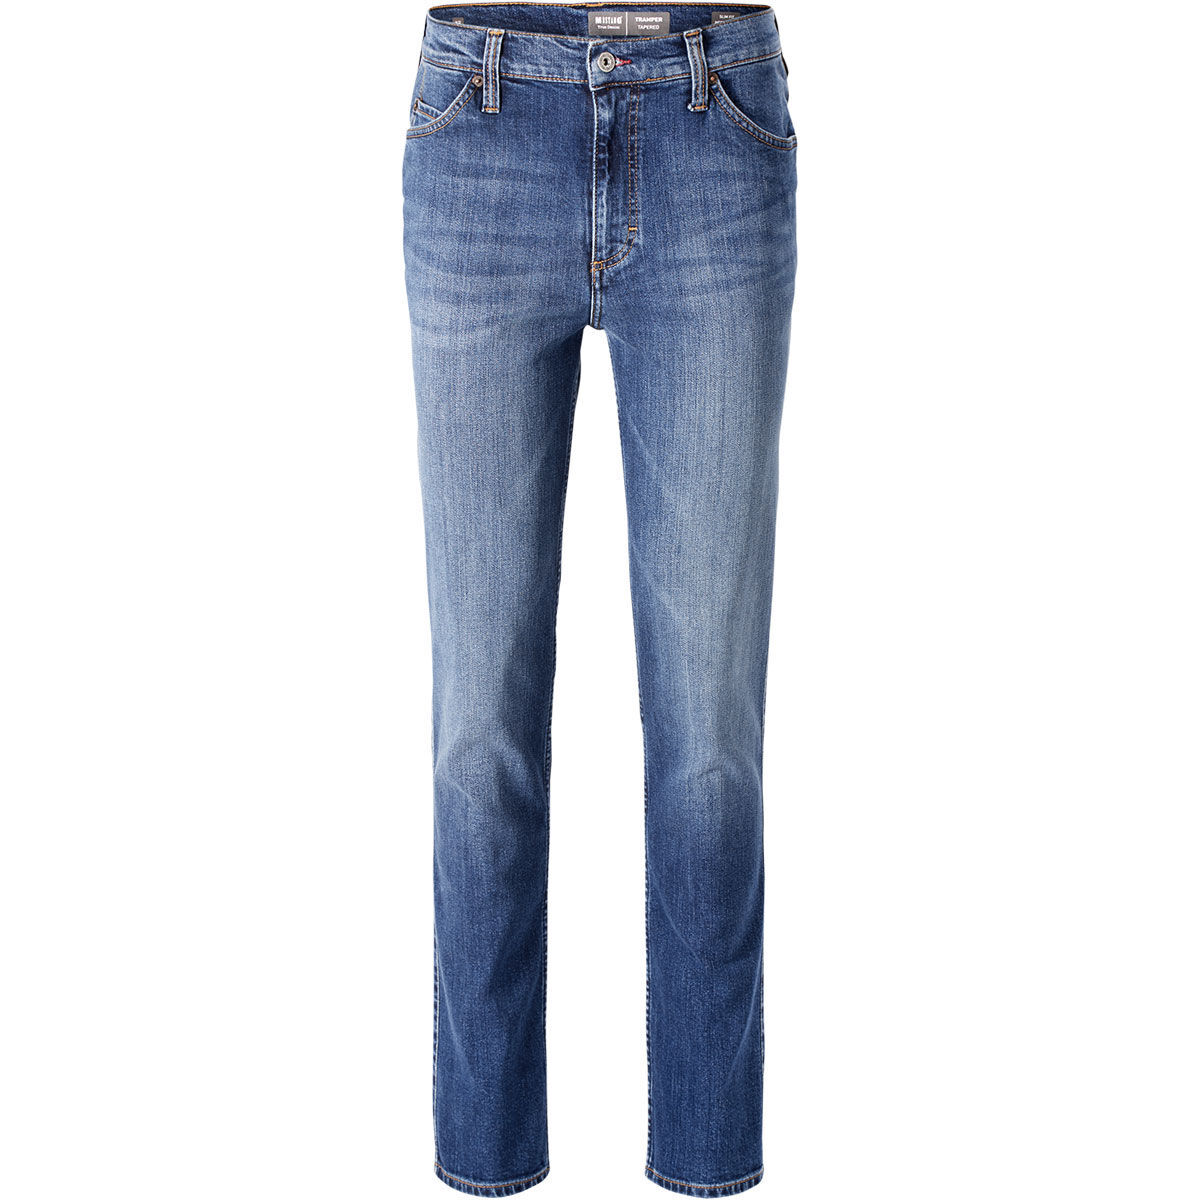 aa88cdc60d5ab3 Mustang Herren Jeans Tramper Tapered